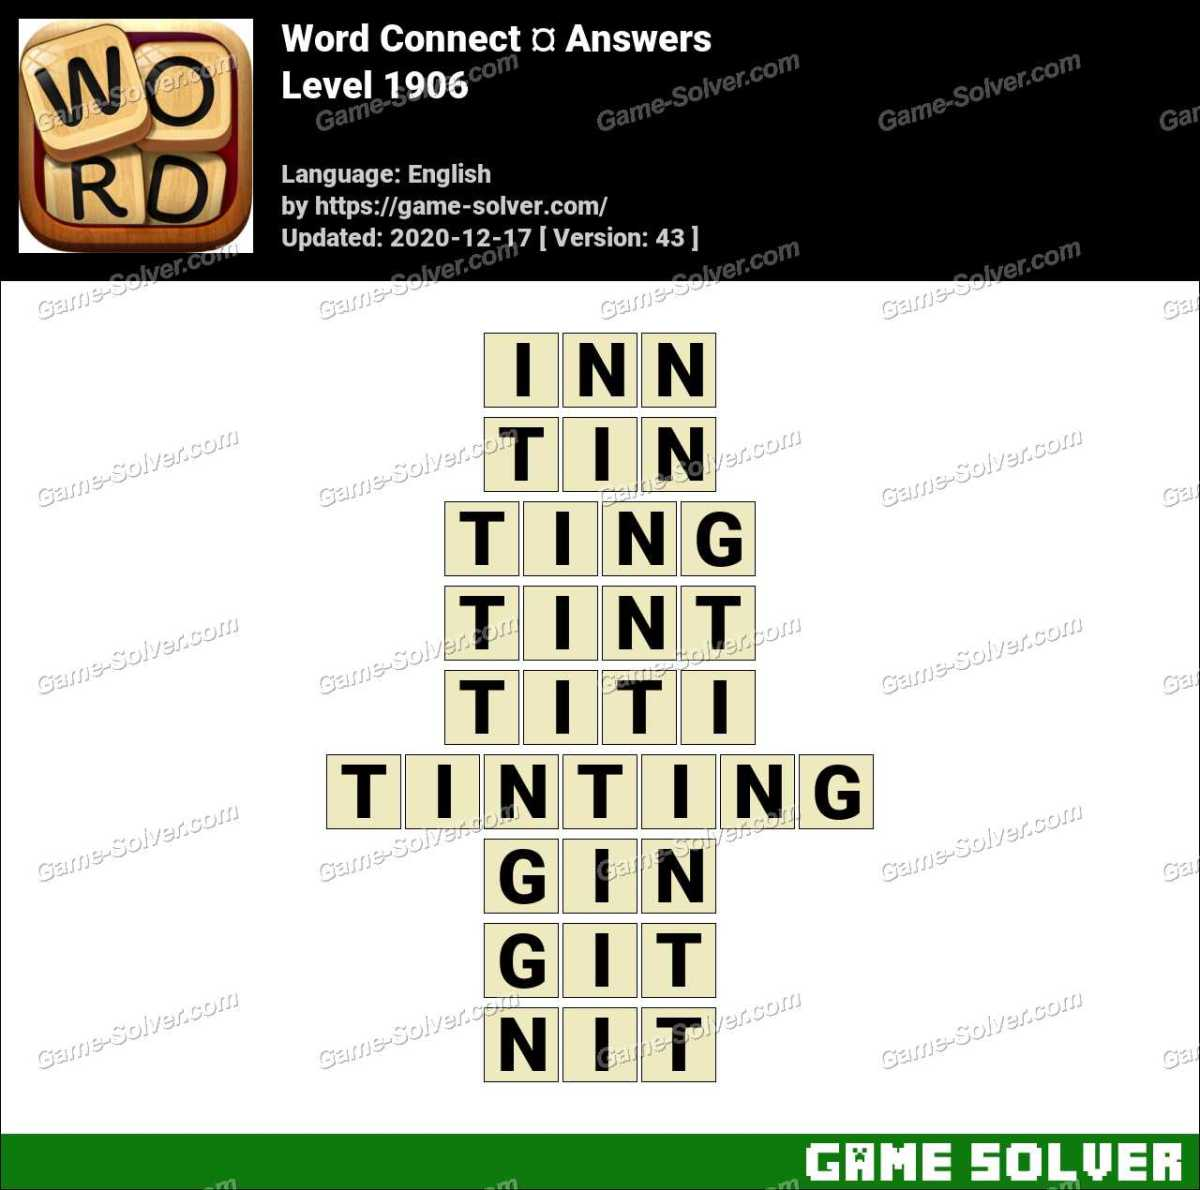 Word Connect Level 1906 Answers